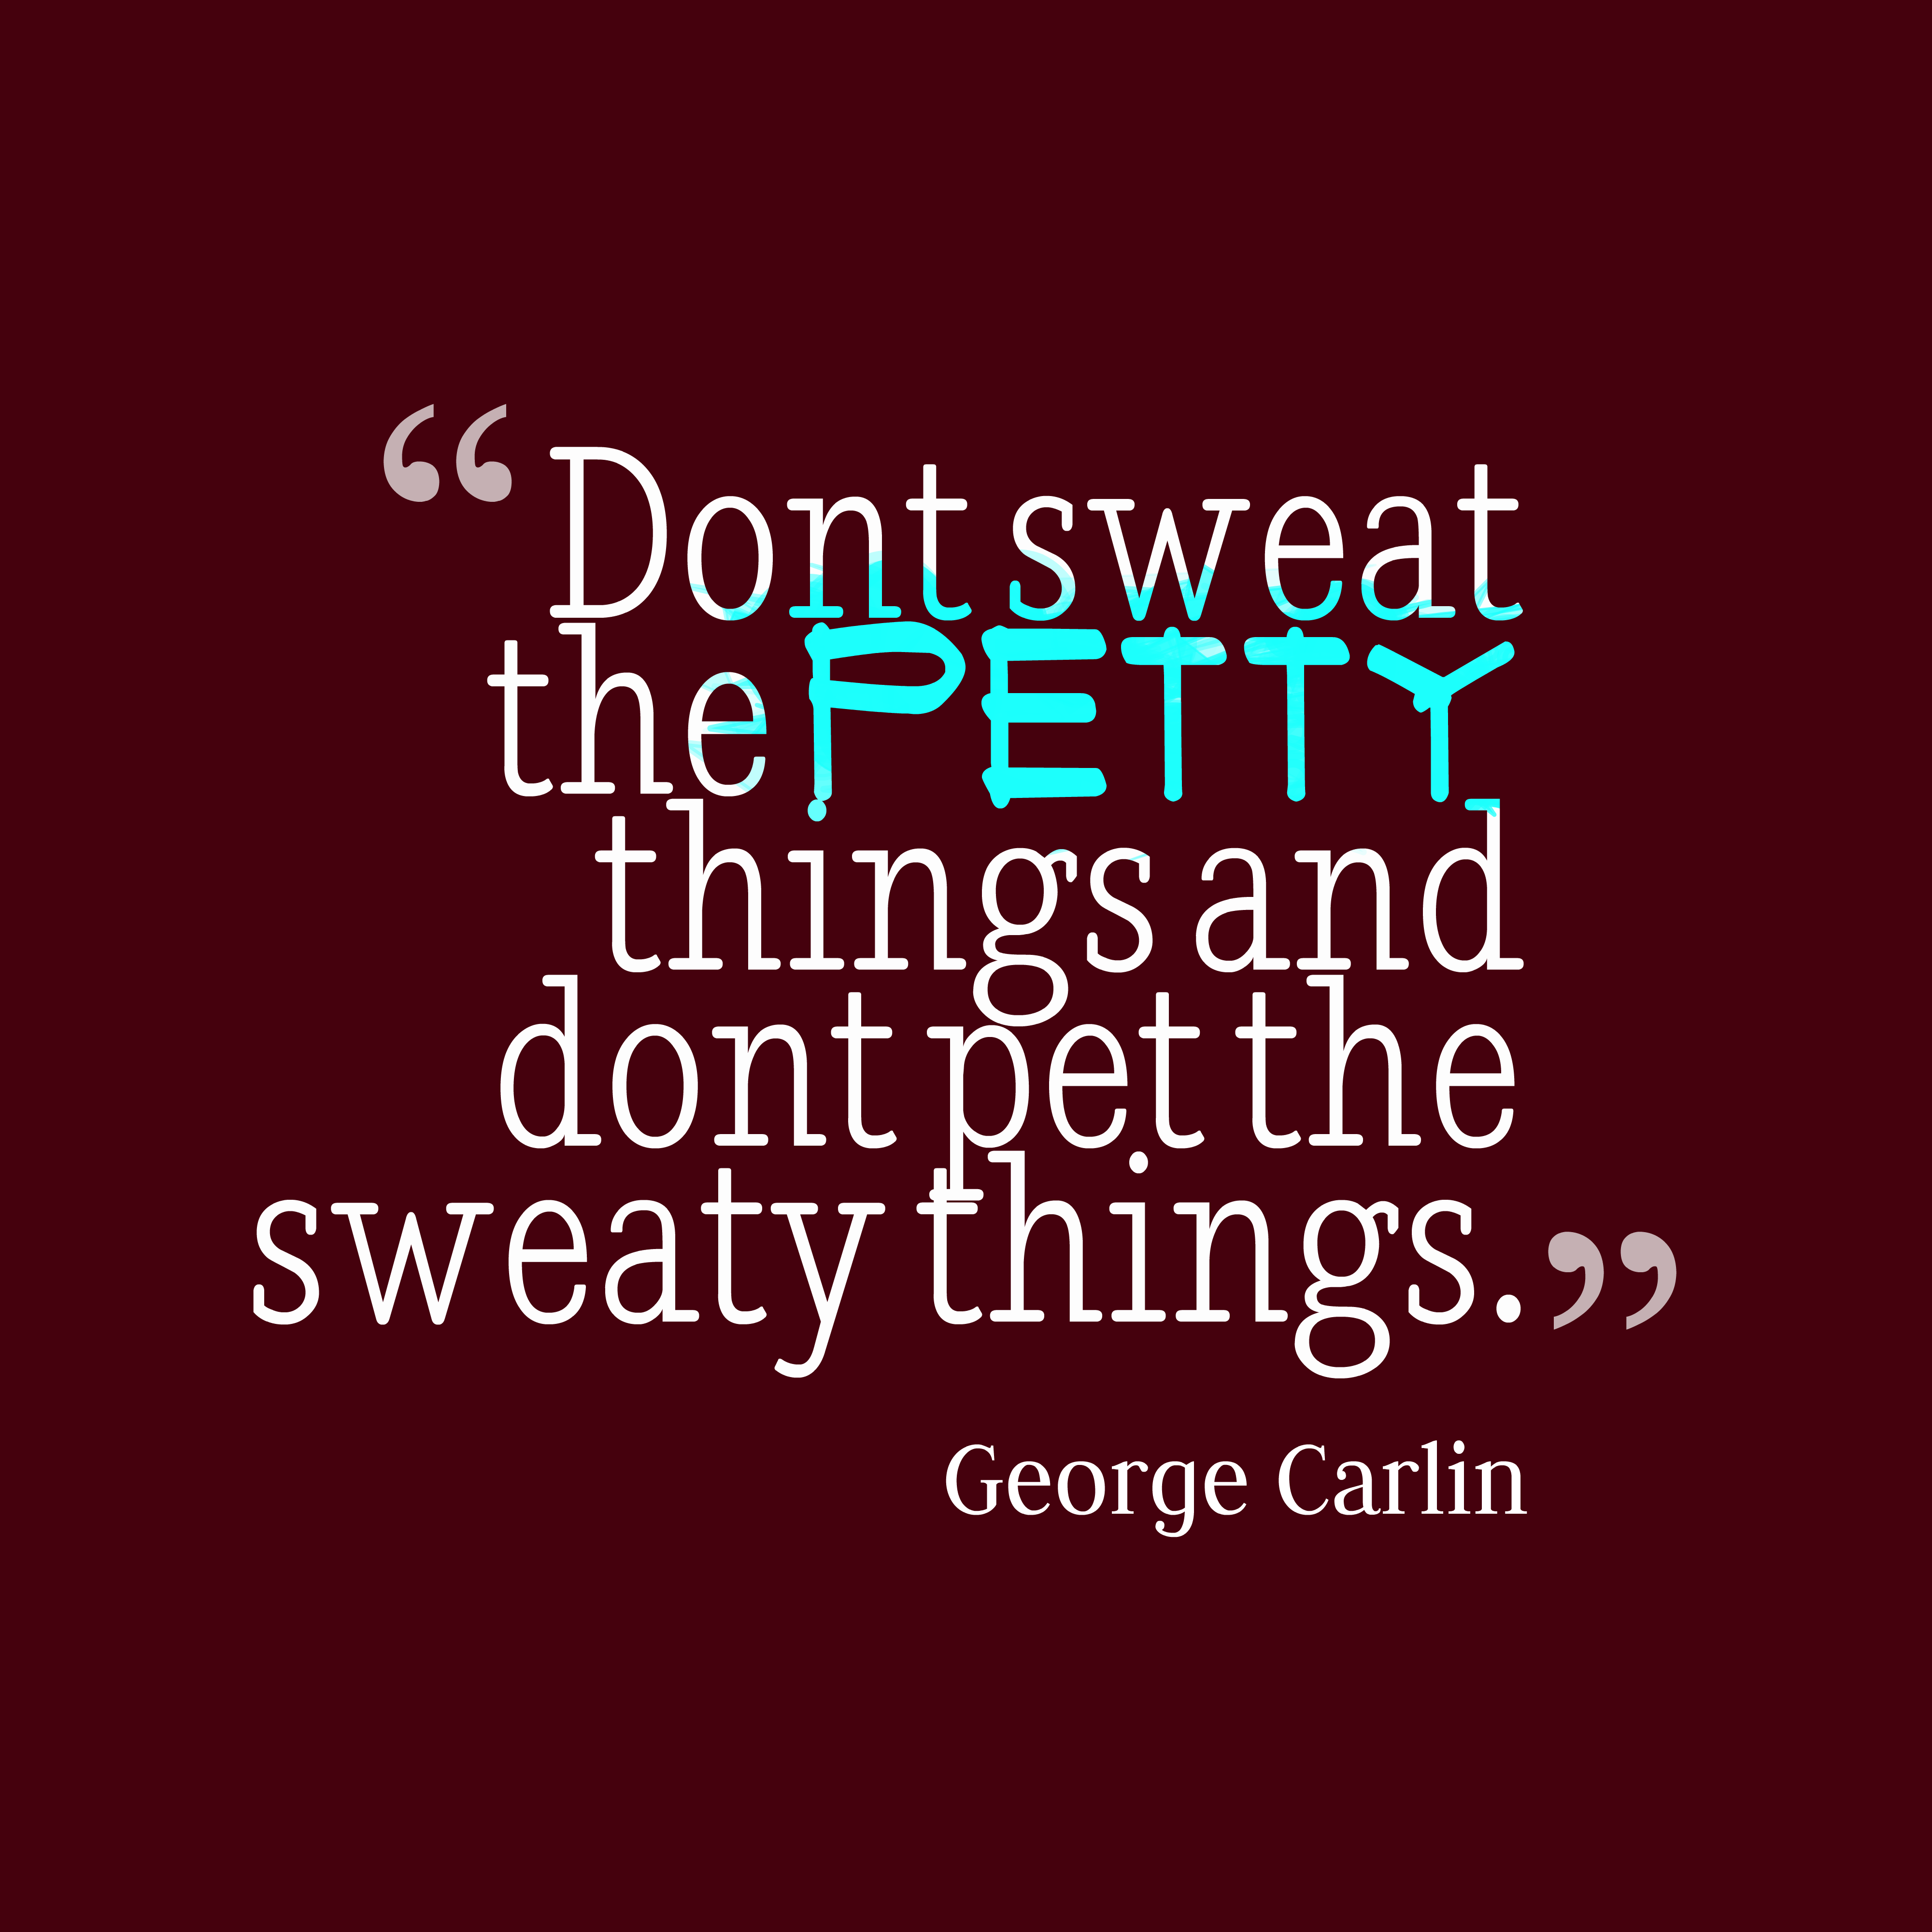 hi-res image of Don't sweat the petty things and don't pet the sweaty things.